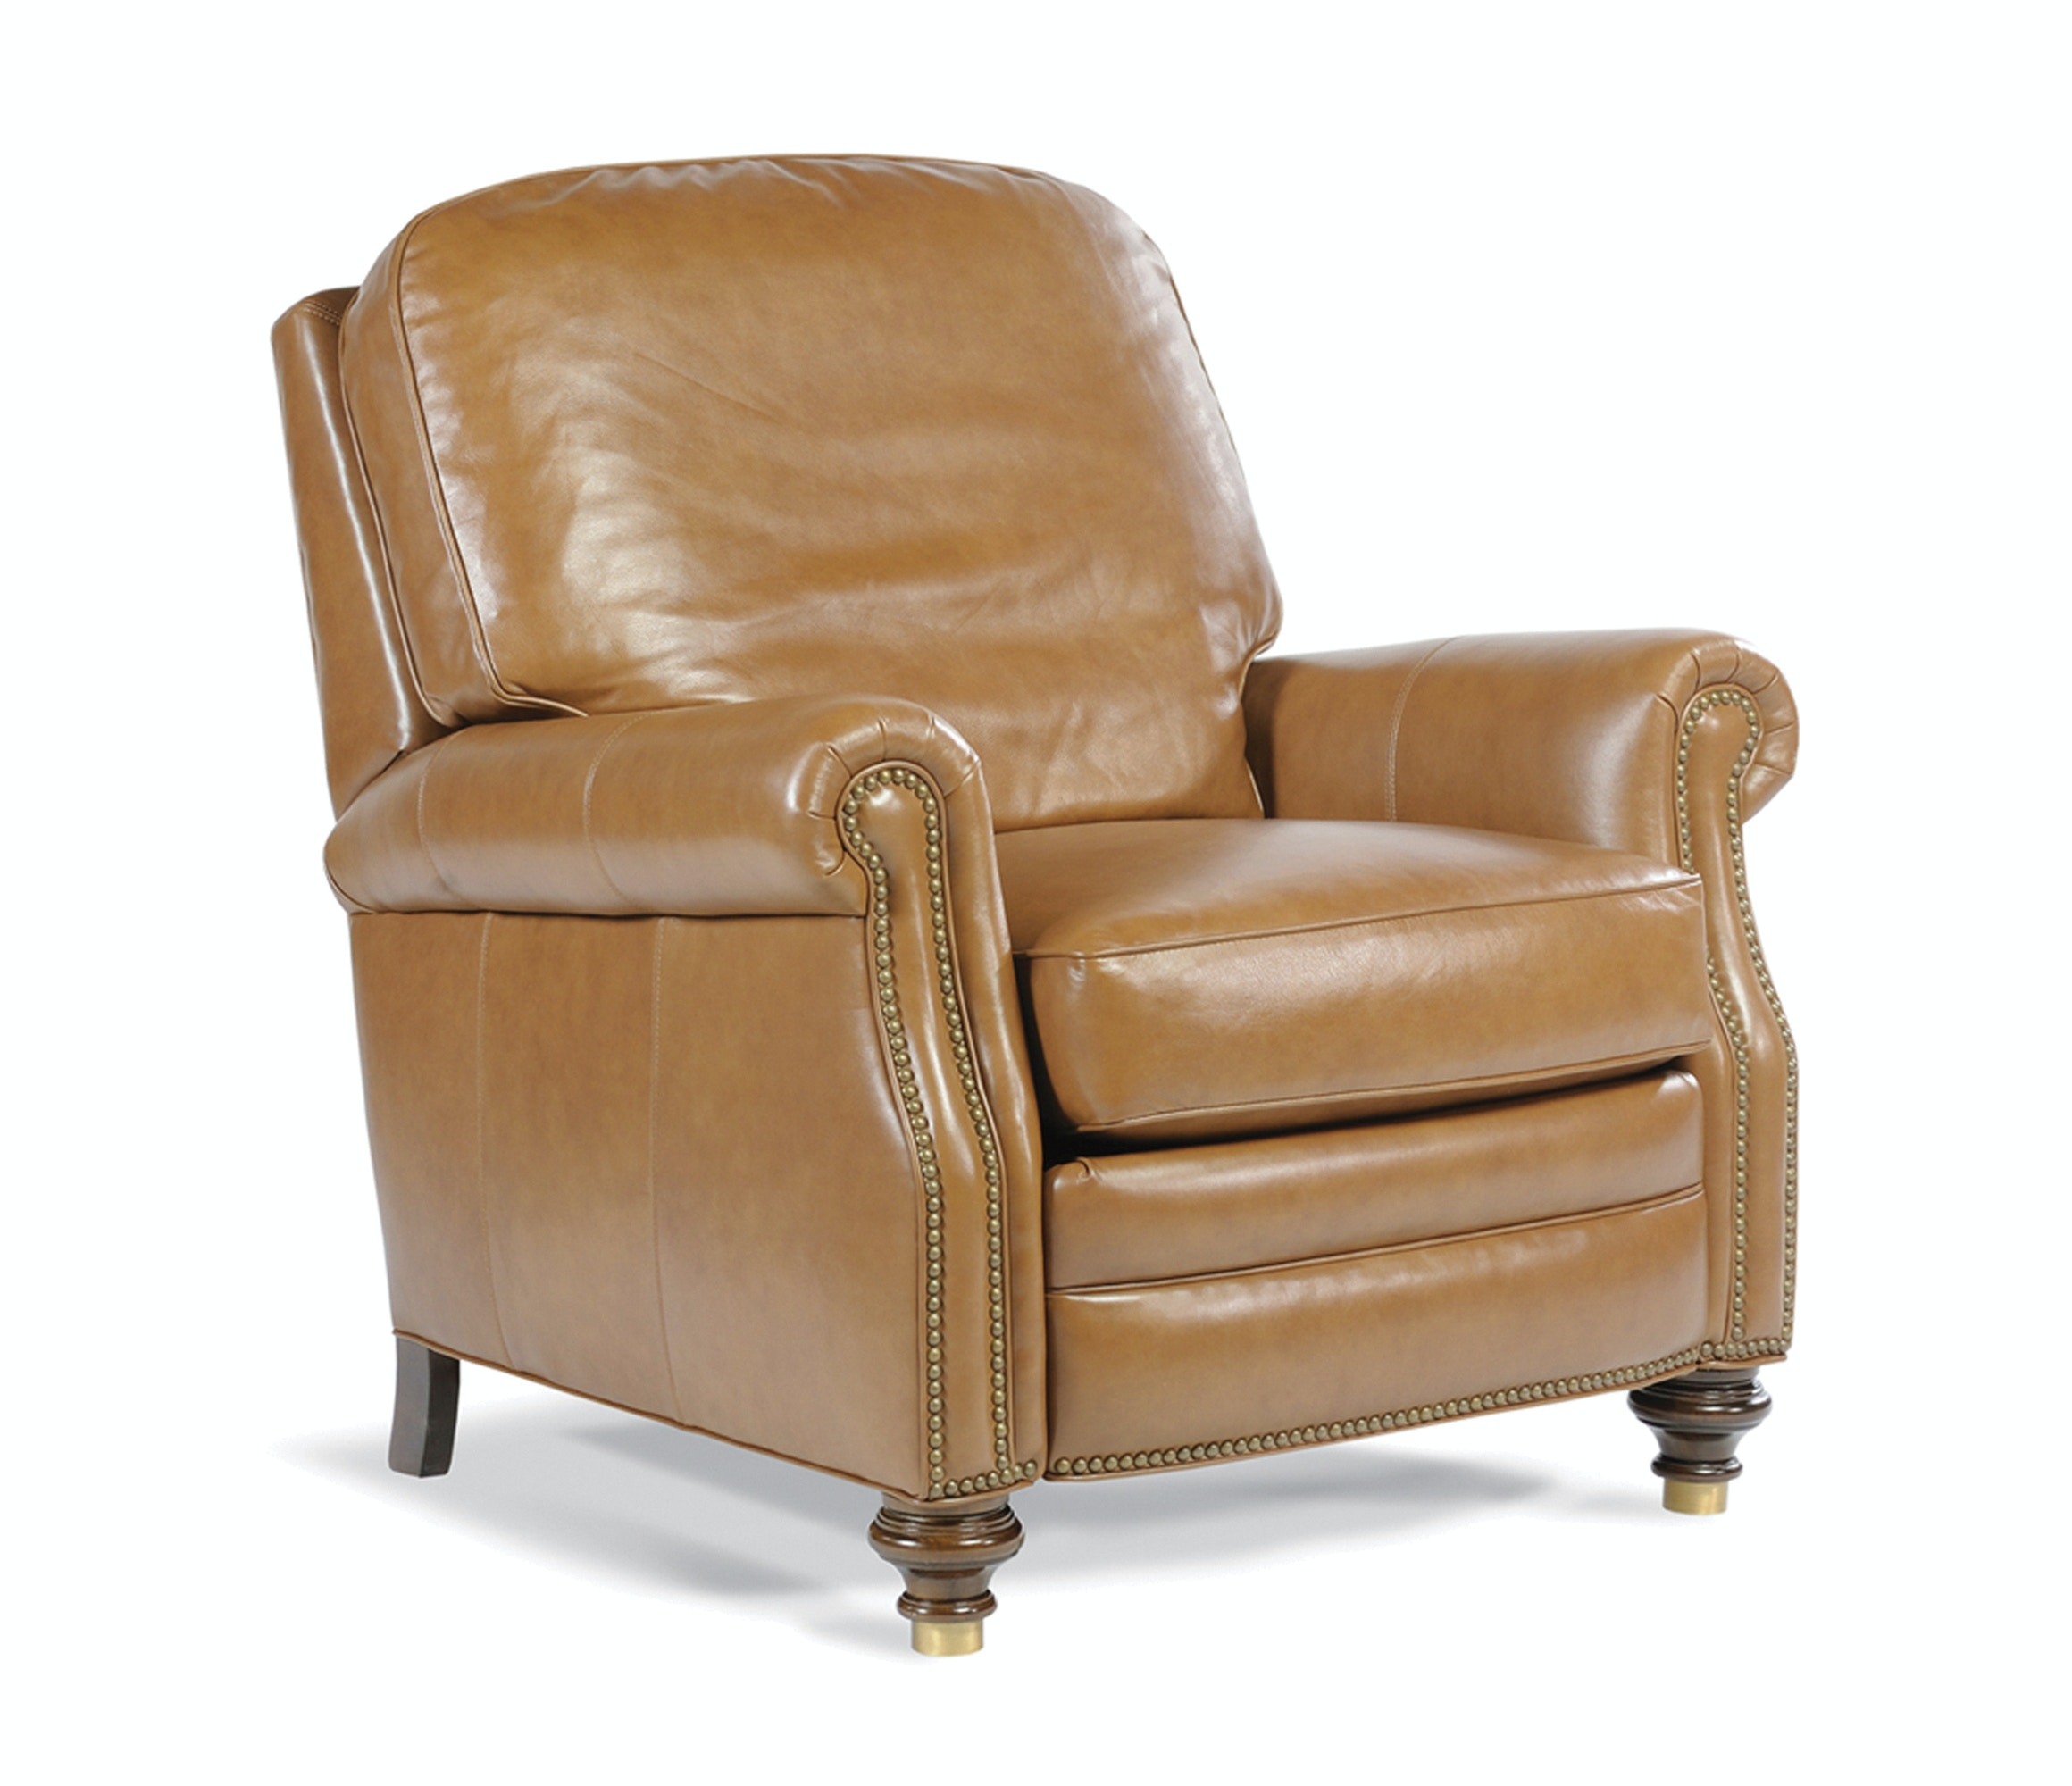 Delicieux Motorized Chairs Require A Power Source. Available In Fabric. Nails Are  Standard. Ridgely Reclining Chair L3112 H Taylor King